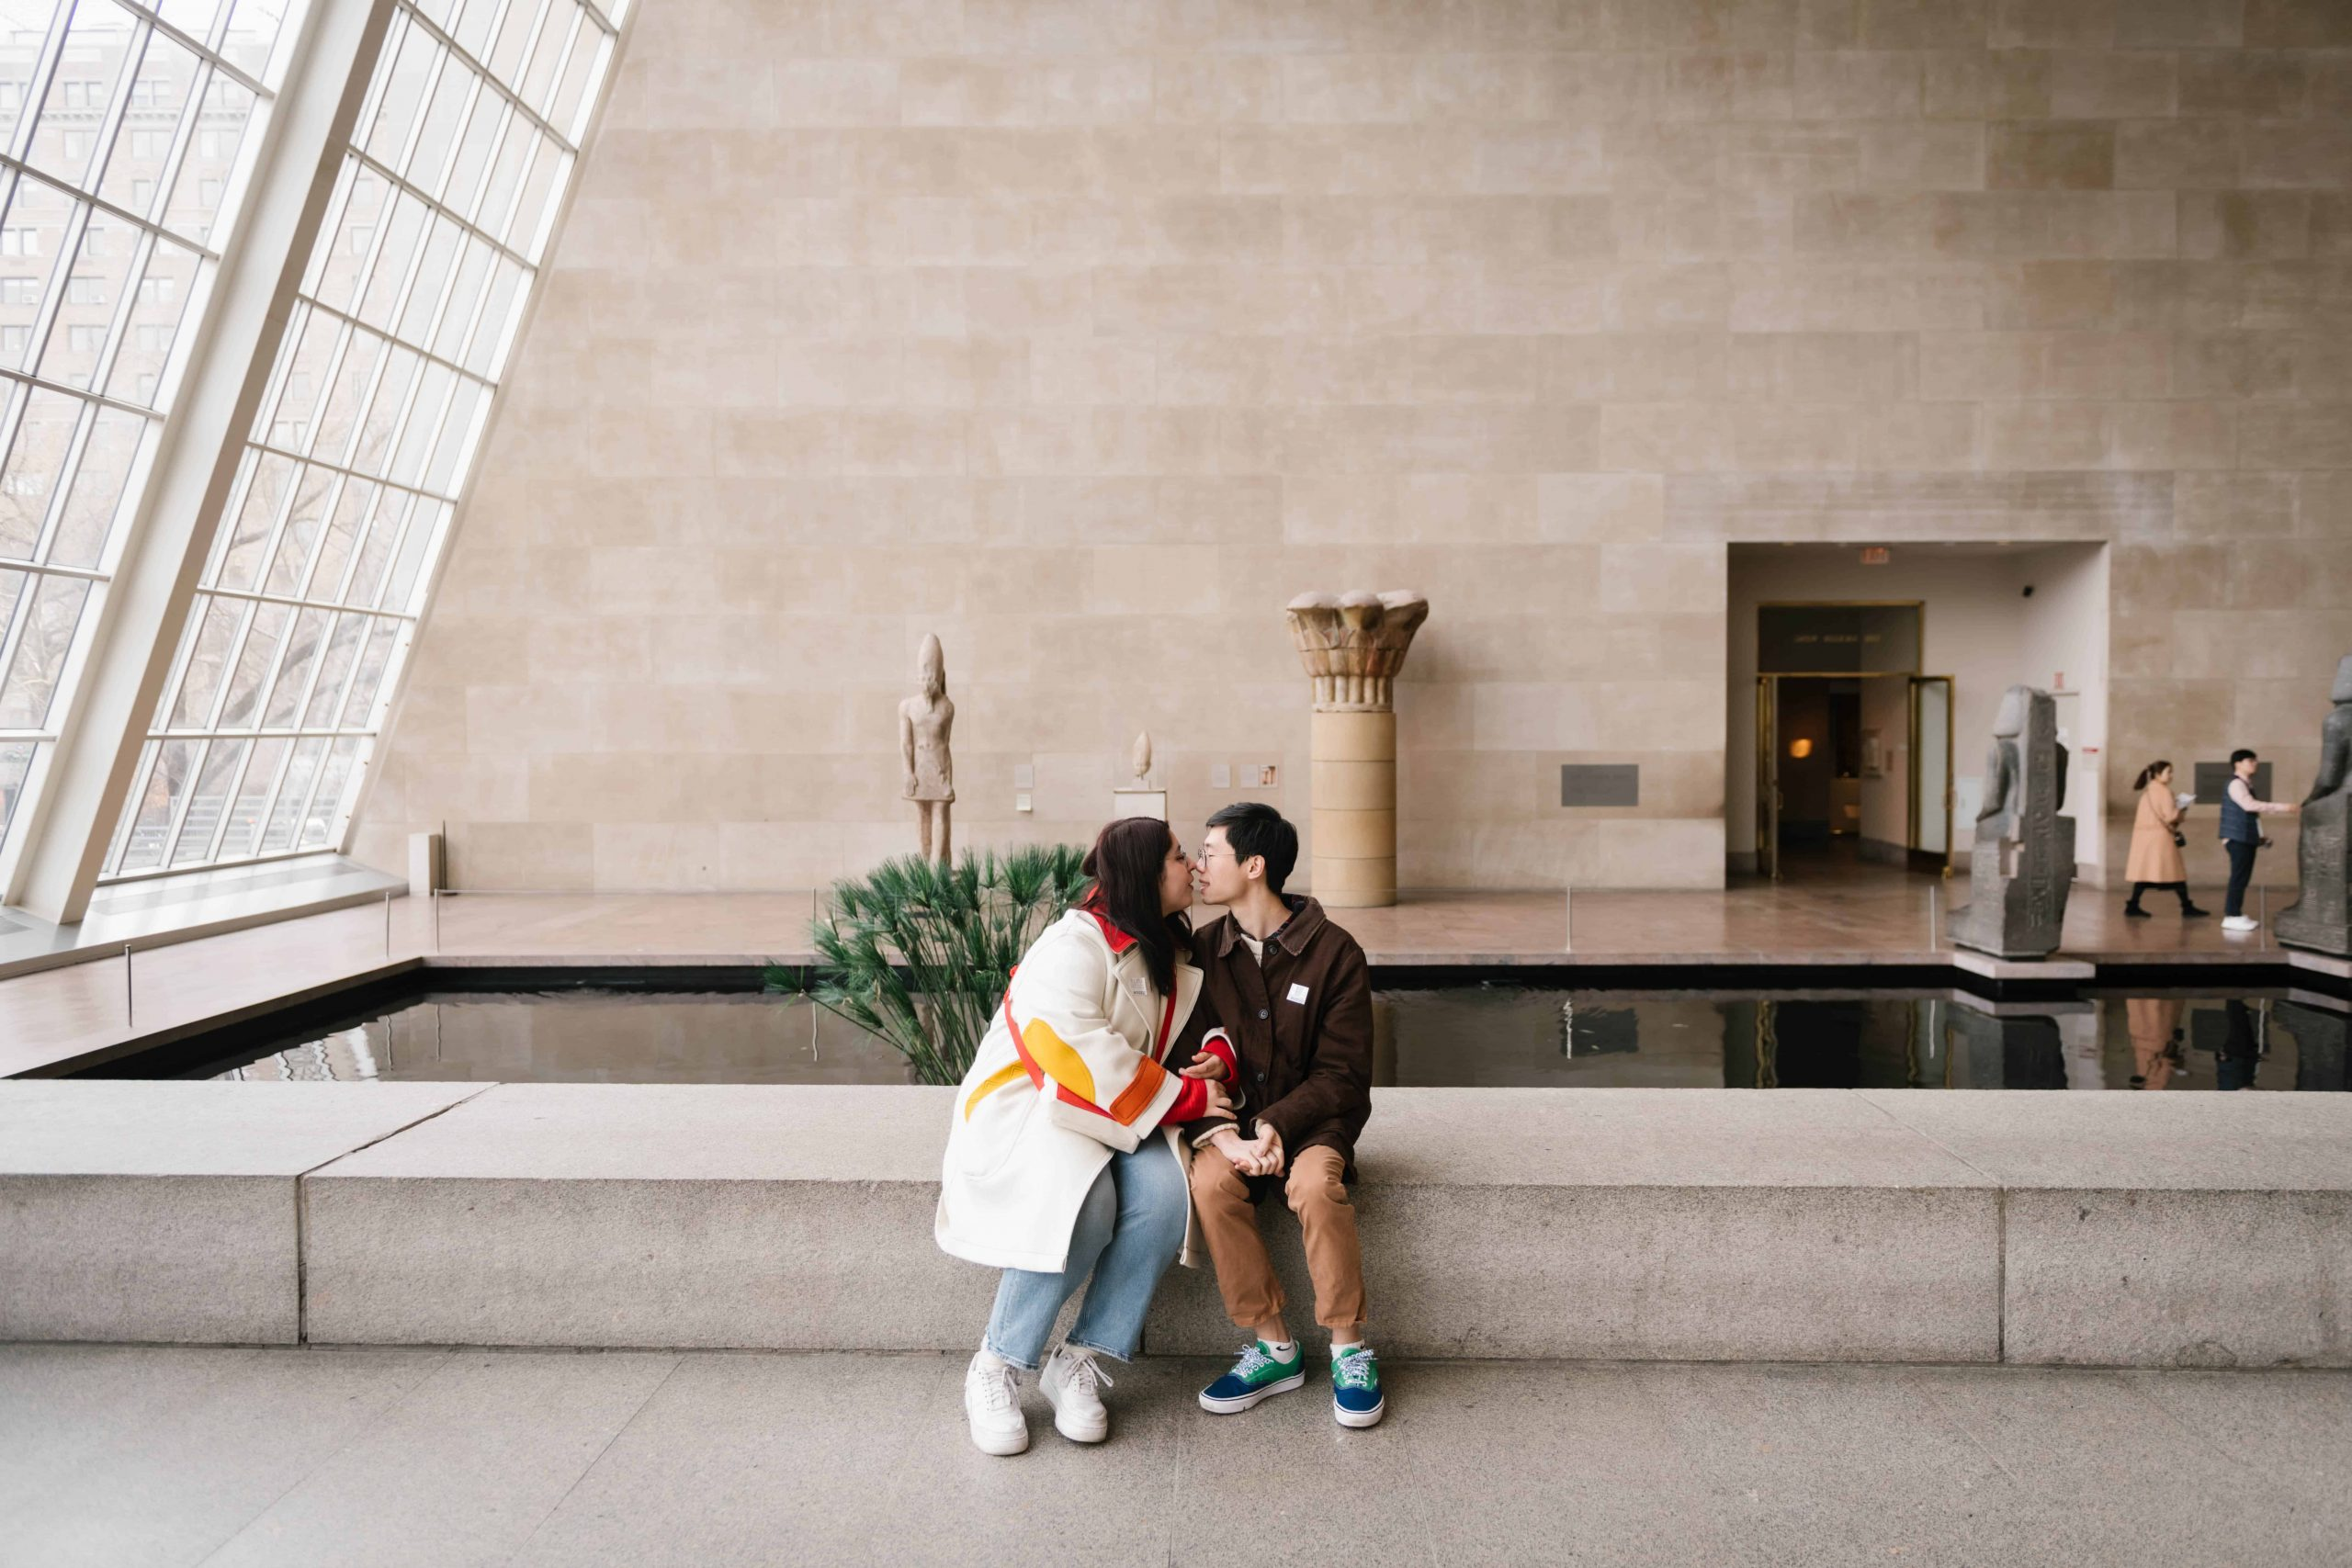 The Met: one of the best places in New York to propose